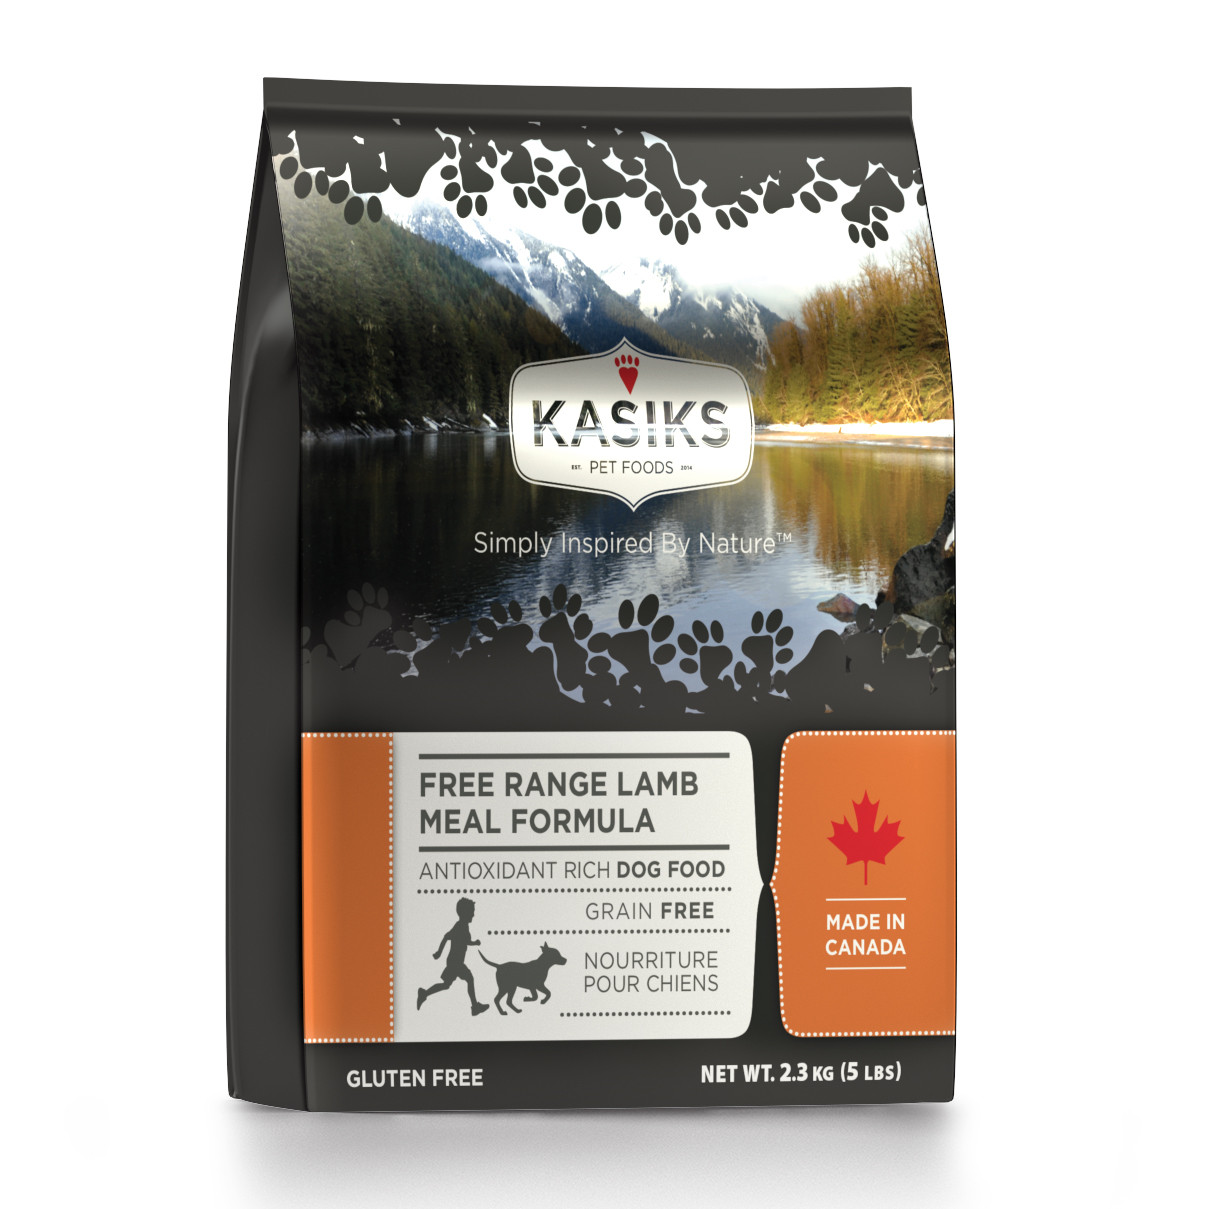 click here to shop Kasiks Free Range Lamb Meal Formula Dry Dog Food